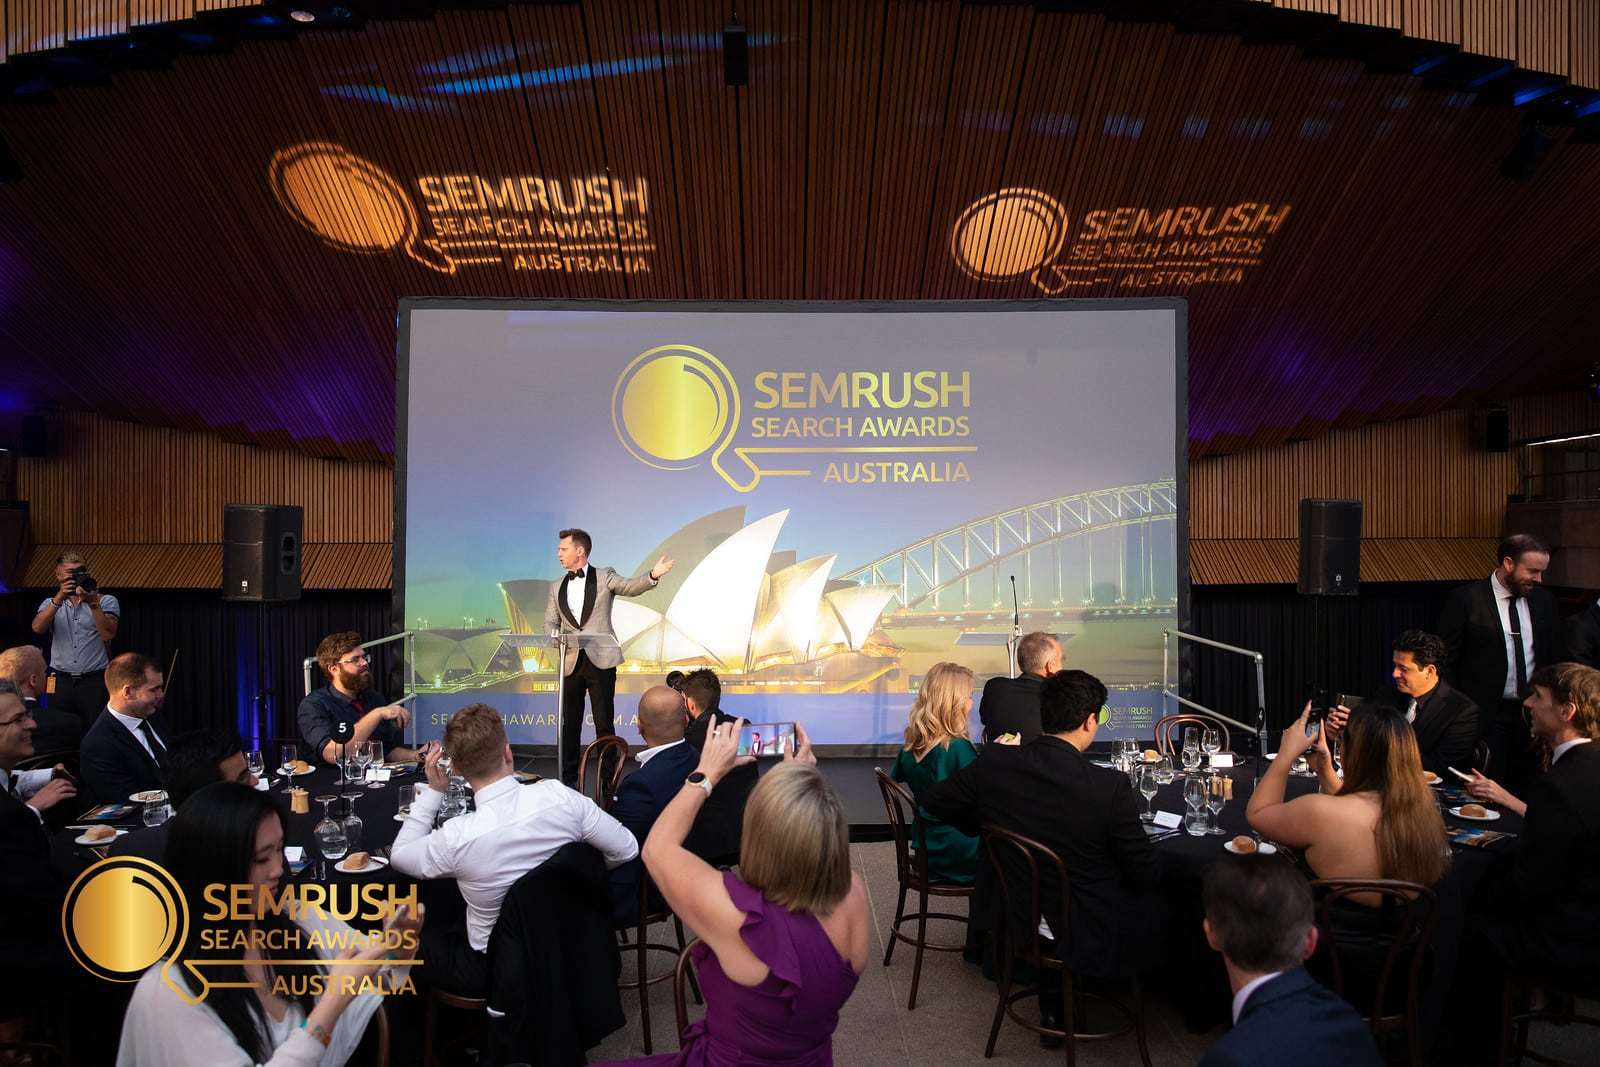 SEM Rush Search Awards